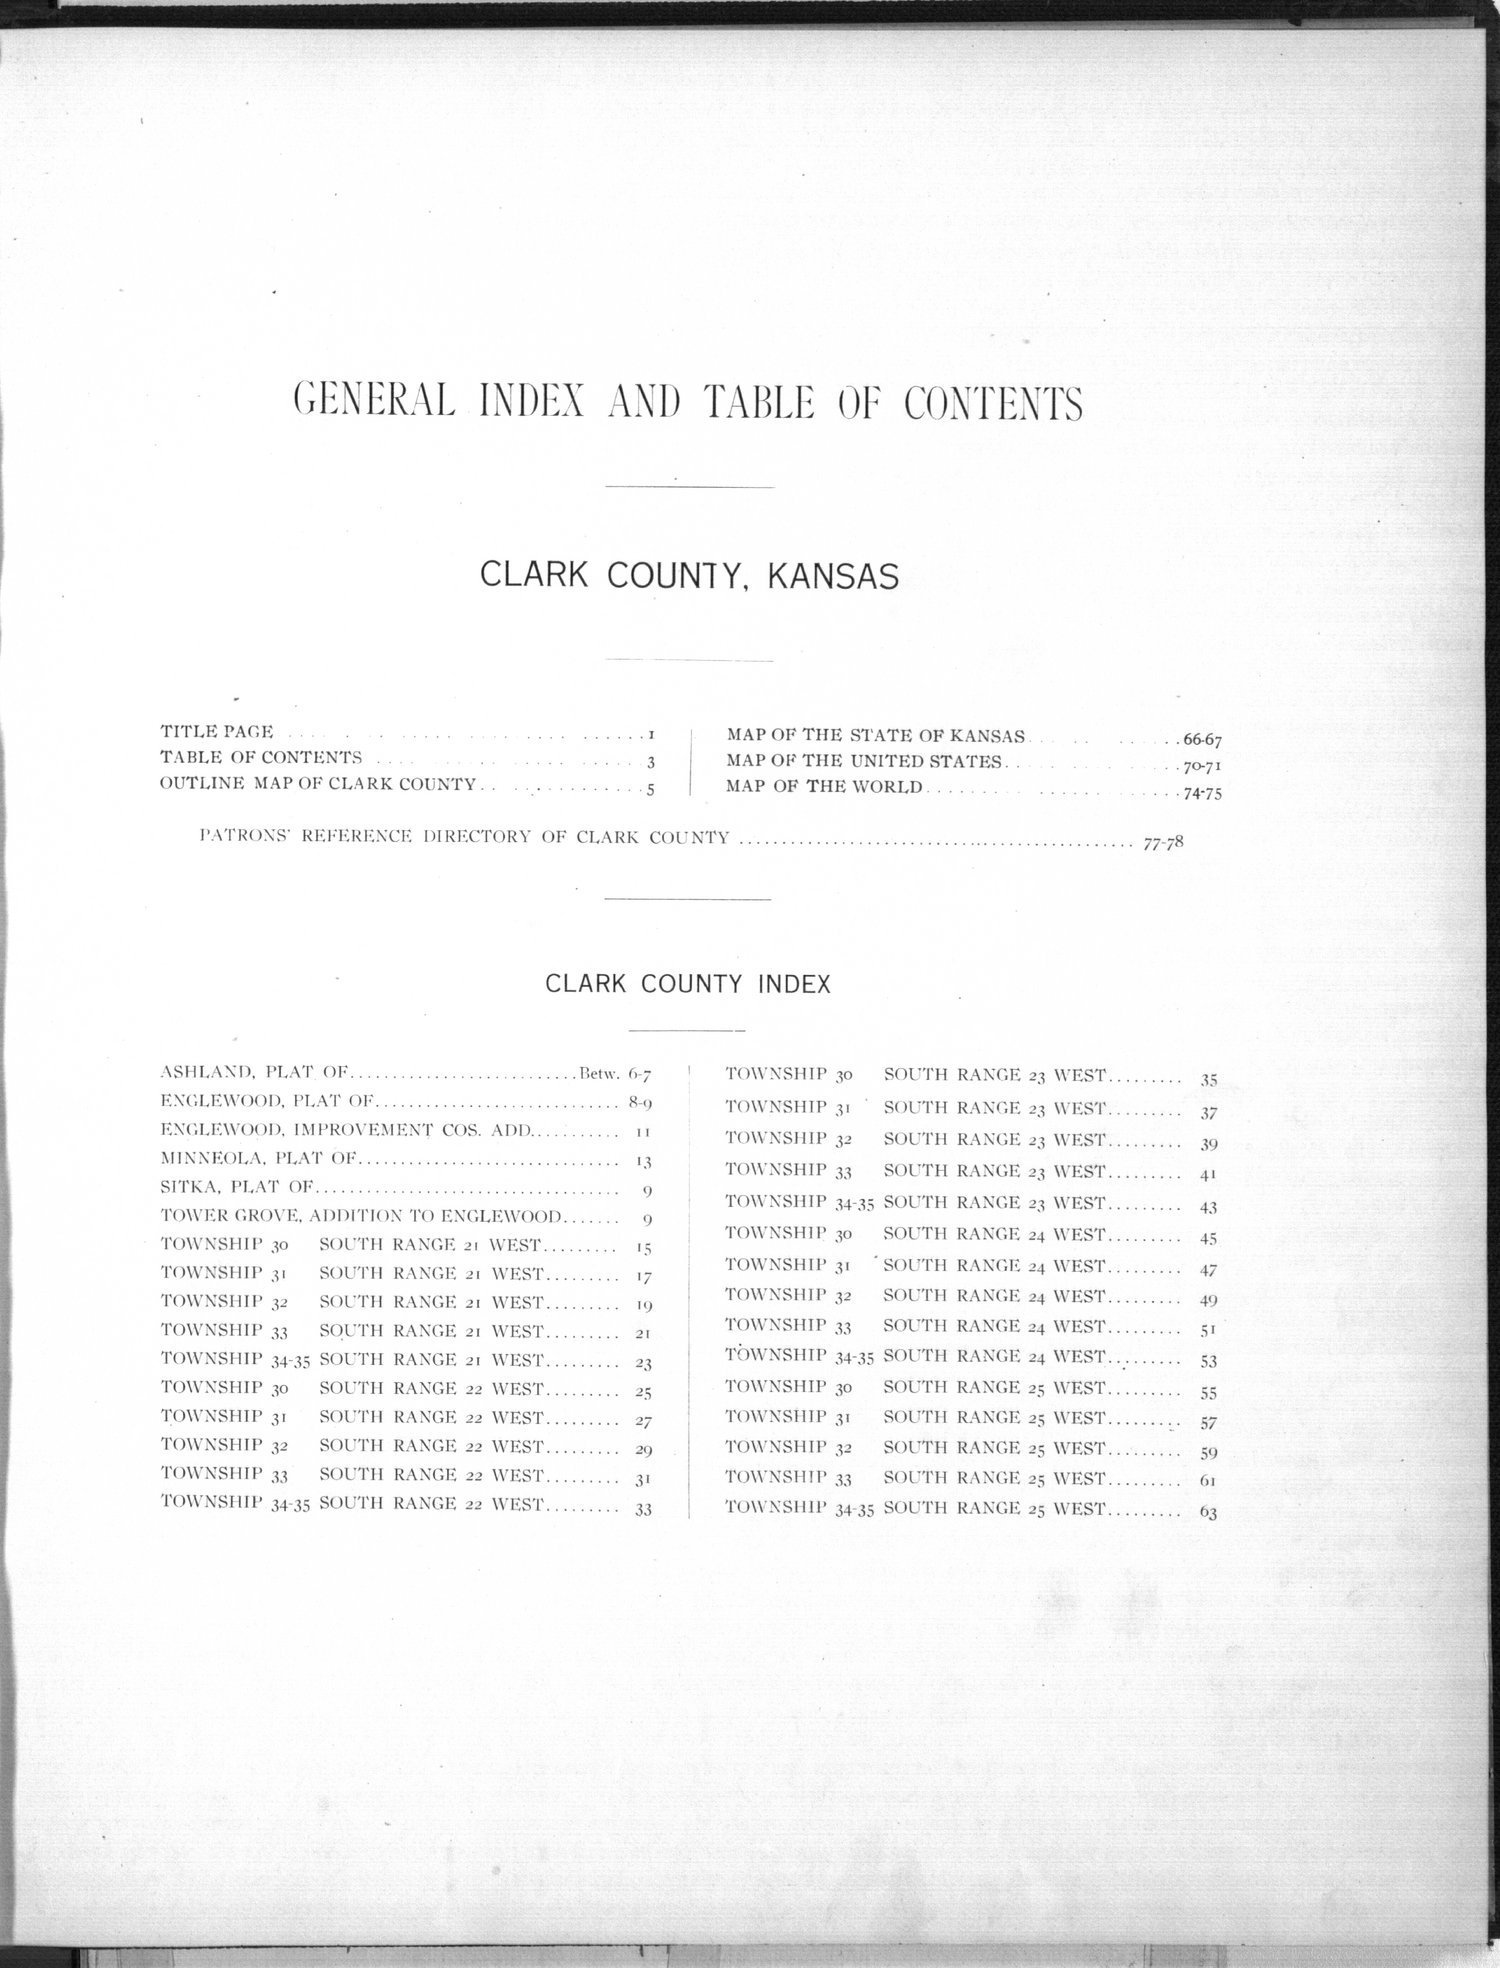 Plat book of Clark County, Kansas - Table of Contents